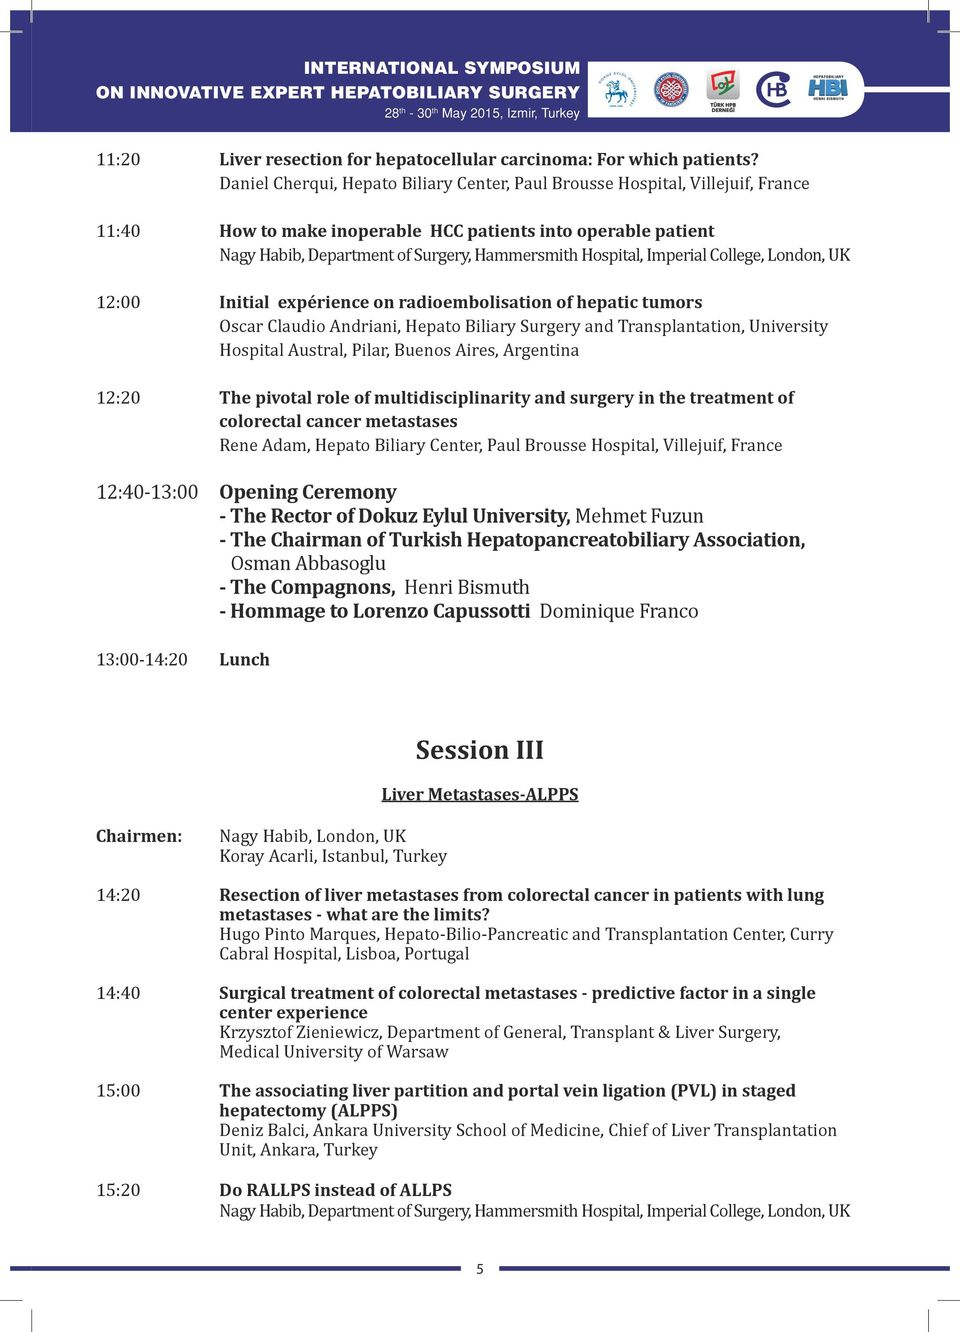 Hospital, Imperial College, London, UK 12:00 Initial expérience on radioembolisation of hepatic tumors Oscar Claudio Andriani, Hepato Biliary Surgery and Transplantation, University Hospital Austral,